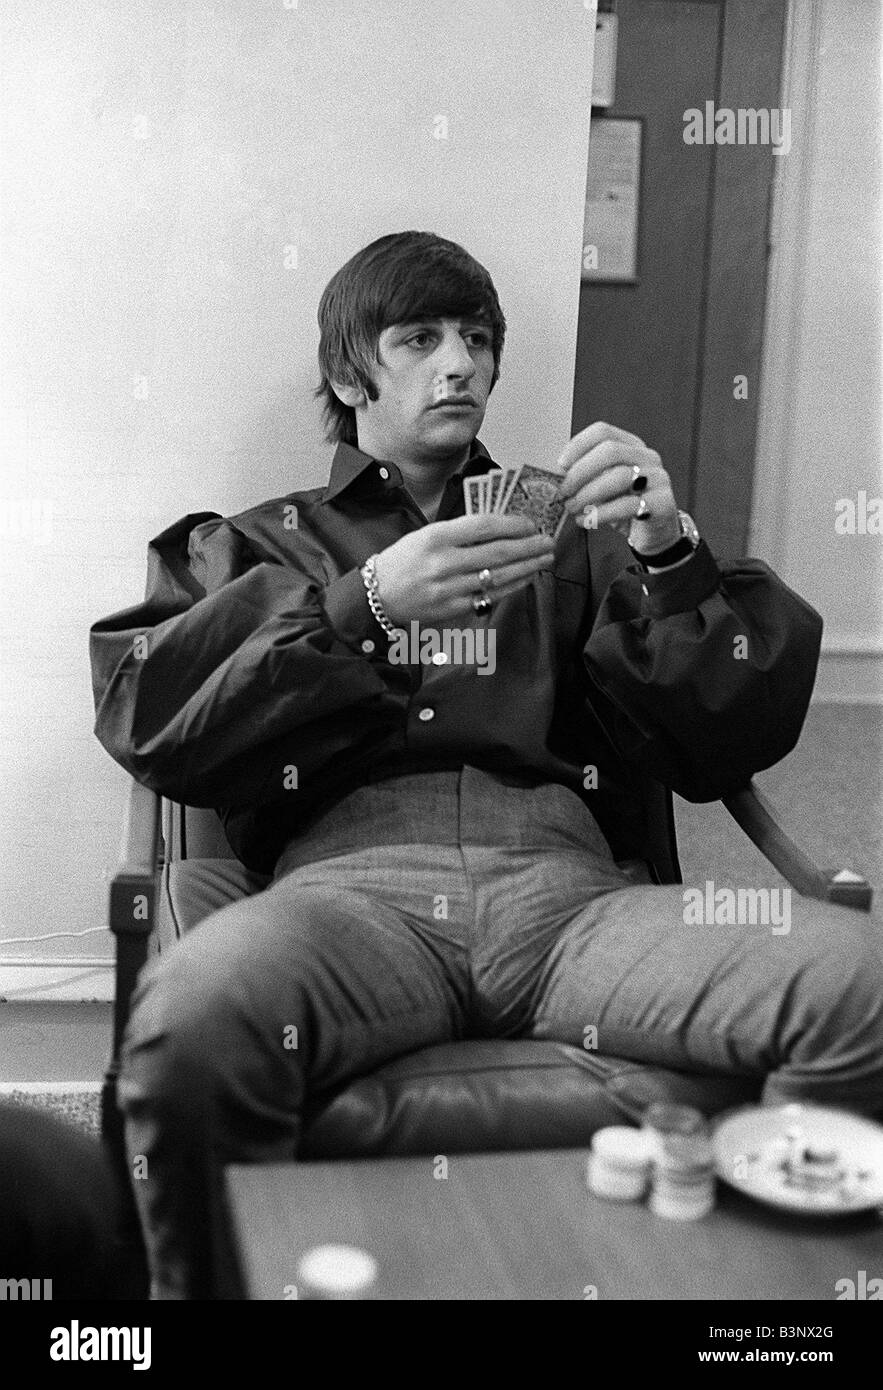 The Beatles August 1964 Ringo Starr Playing Cards At Bel Air Home In California During Tour Of USA